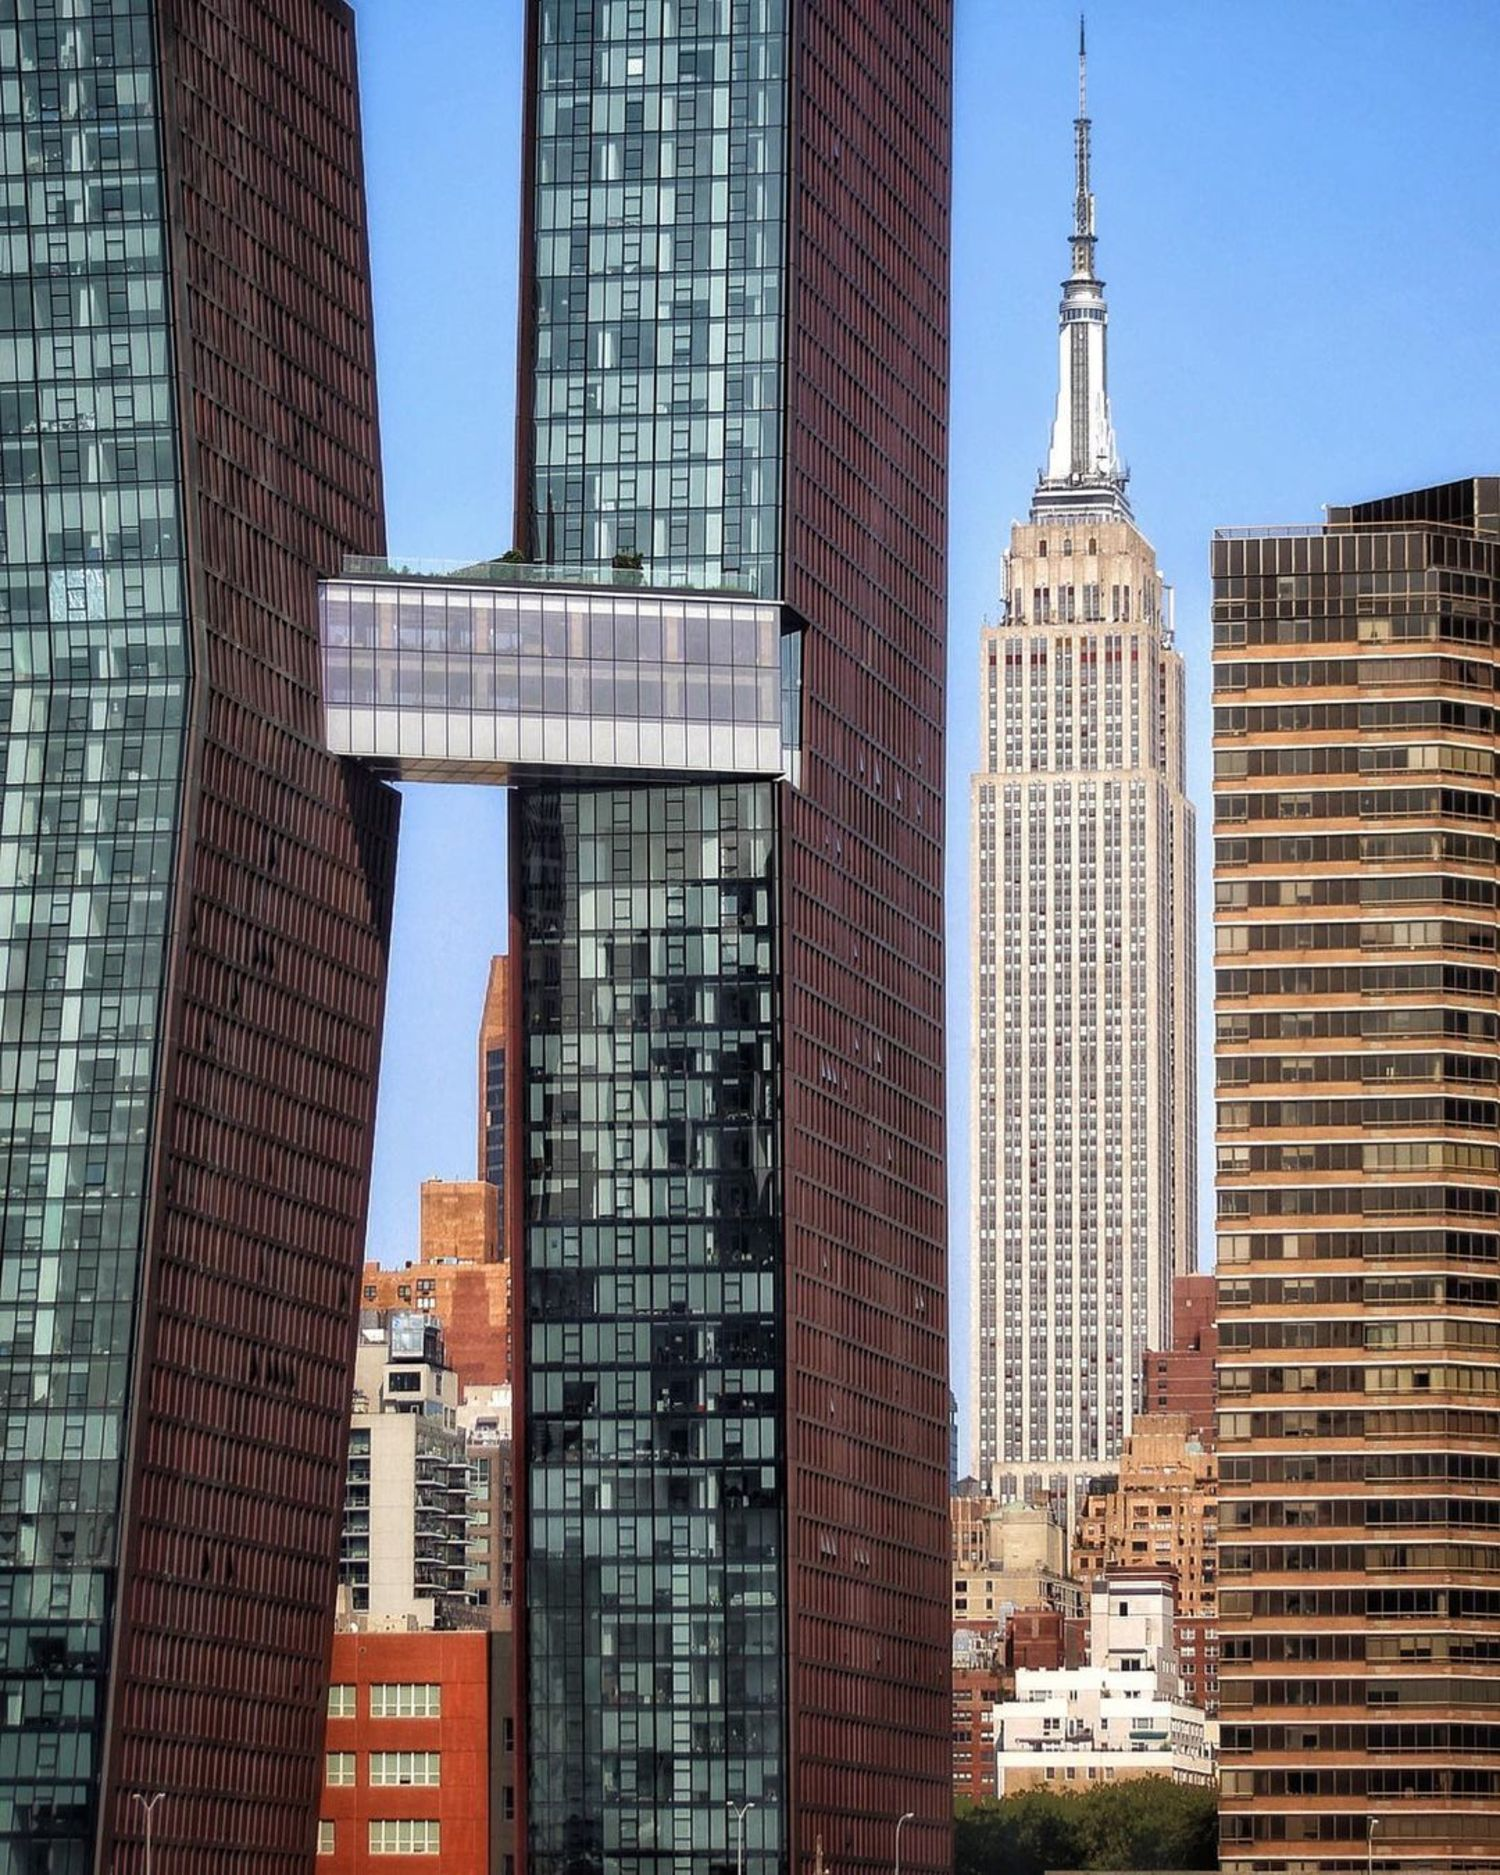 American Copper Buildings and Empire State Building, Midtown, Manhattan